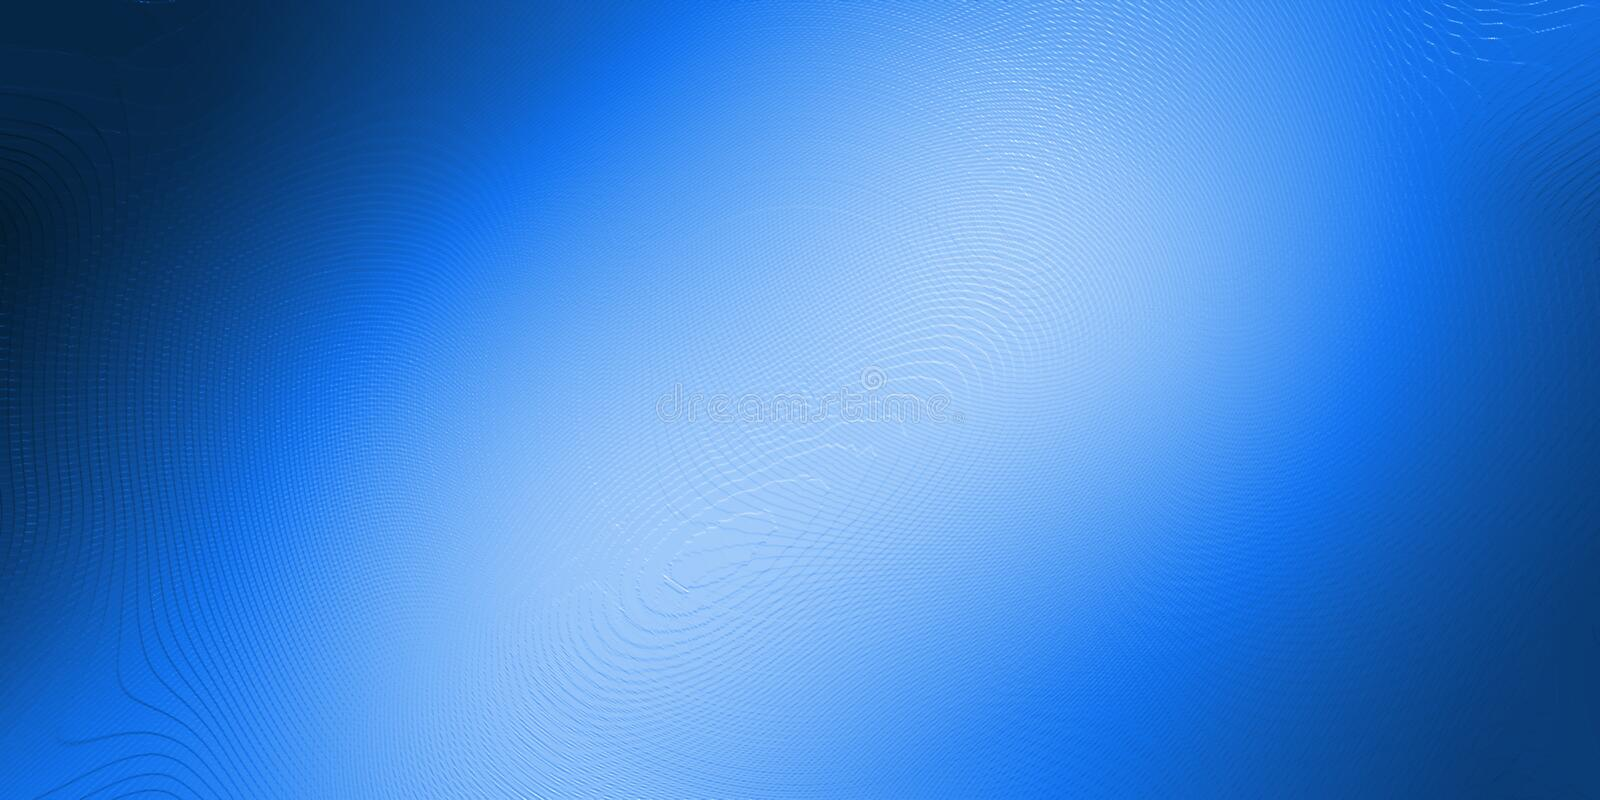 Blue color abstract blur background wallpaper, vector illustration. royalty free stock photography